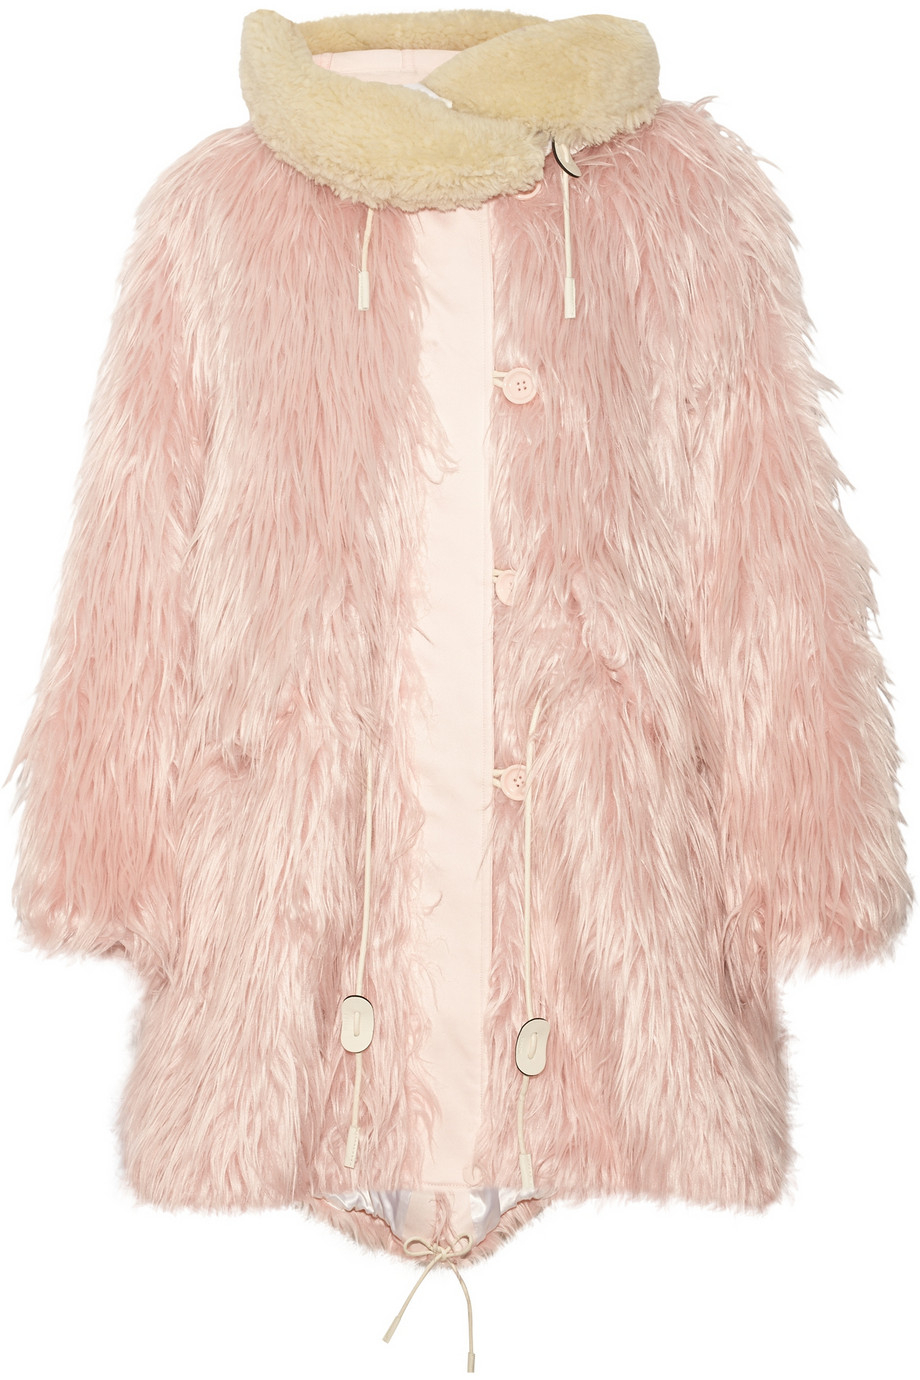 Coach Fluffy Shearling-Trimmed Faux Fur Coat in Pink | Lyst